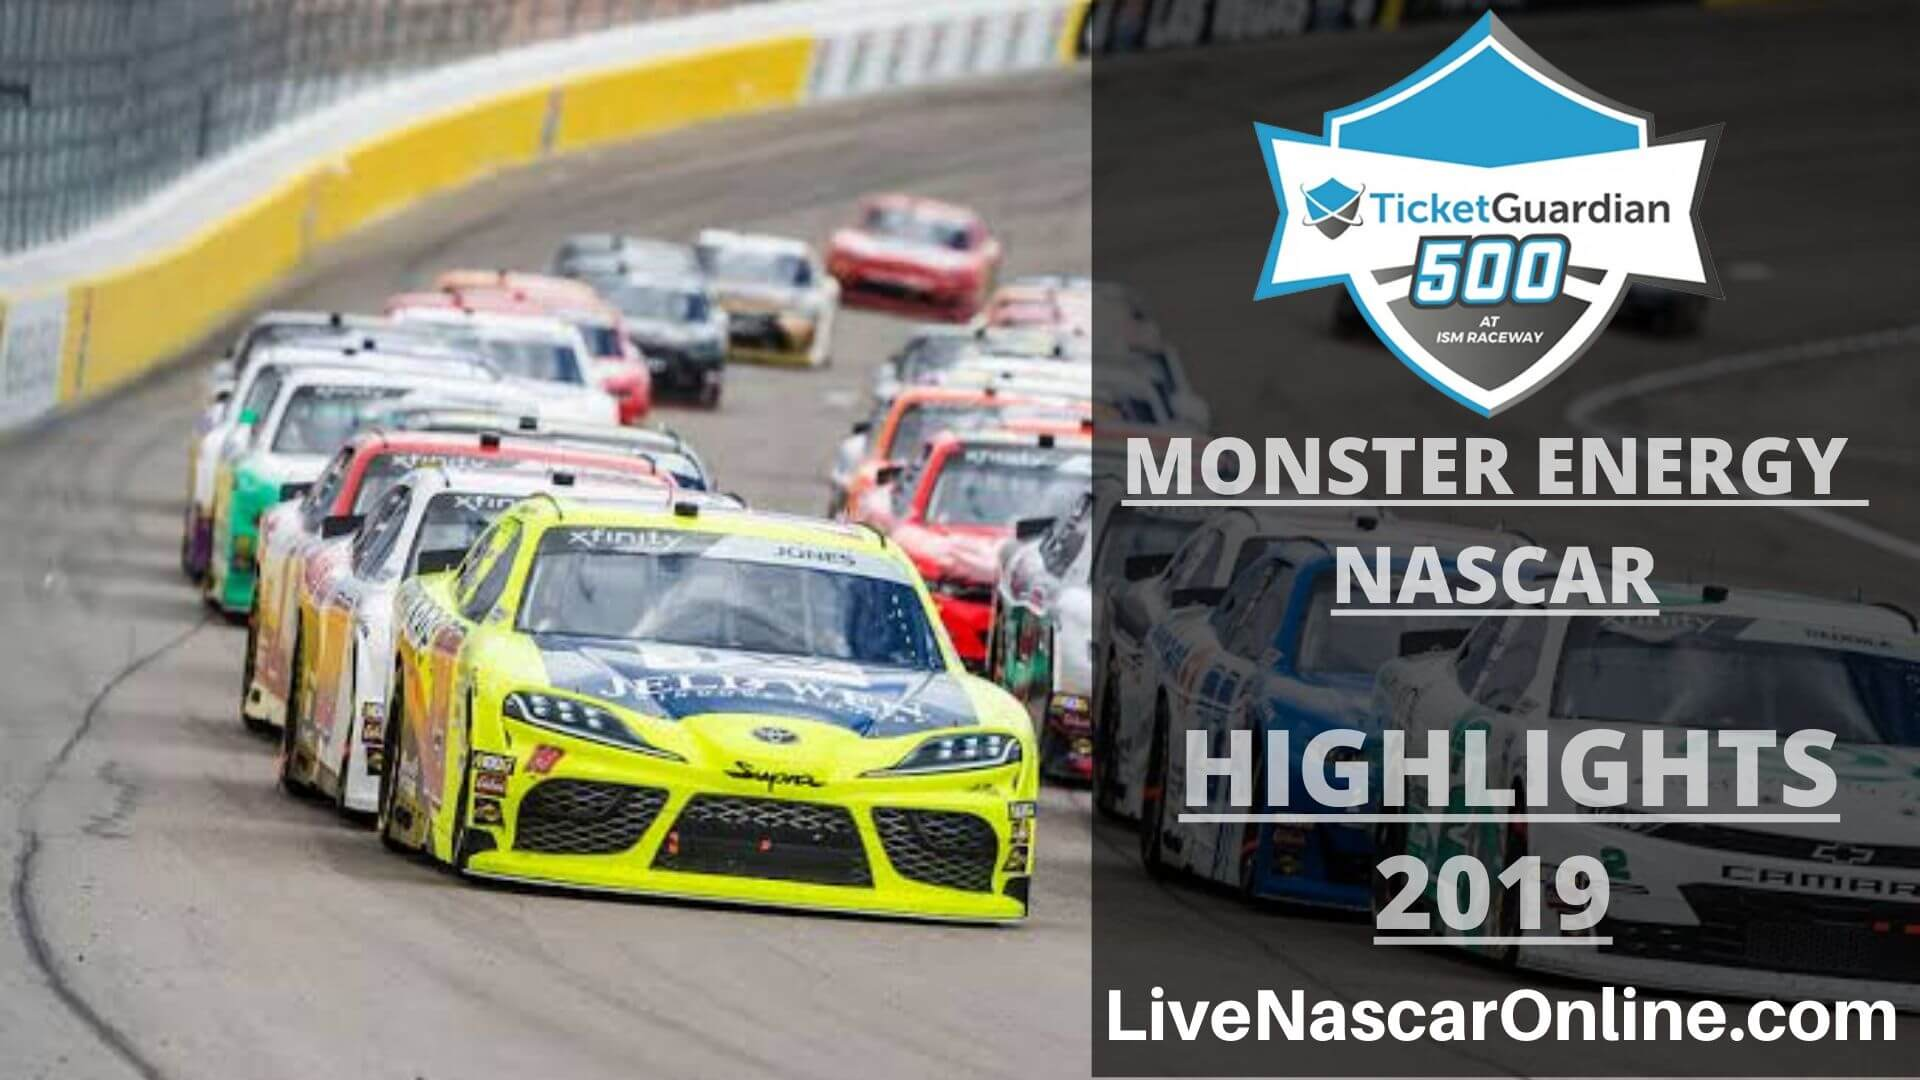 NASCAR Monster Energy TICKETGUARDIAN 500 Highlights 2019 Online